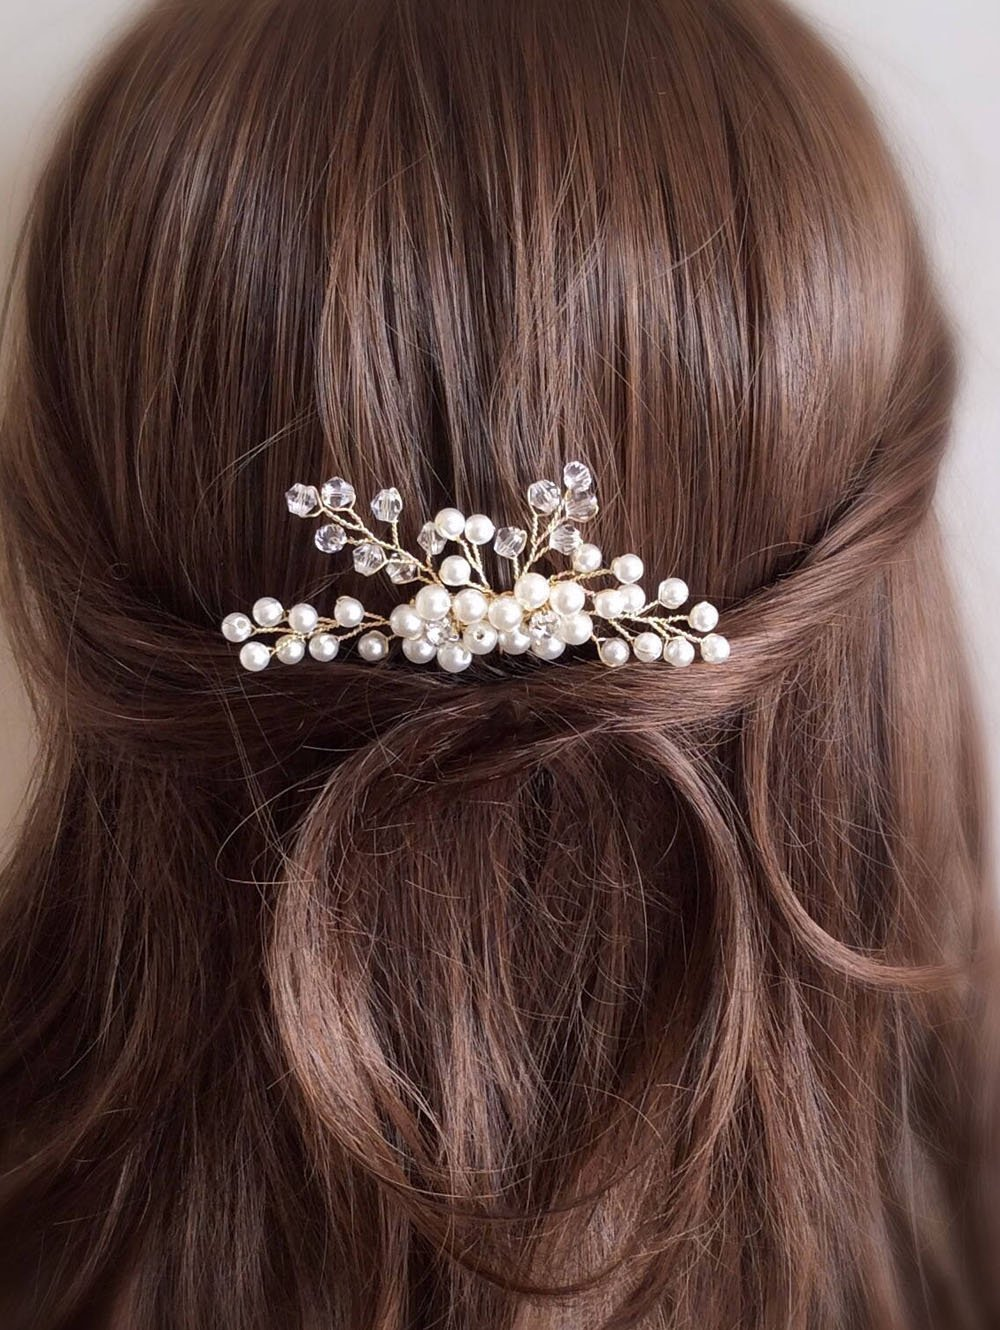 Kercisbeauty Crystal Pearl Beads Wedding Decorative Combs Bridal Hair Comb Headpiece For Bridal Bridesmaid or Flower Girl Wedding Hair Piece Vintage Hair Comb Flower Hair Piece Hair Jewelry Bridal Ha